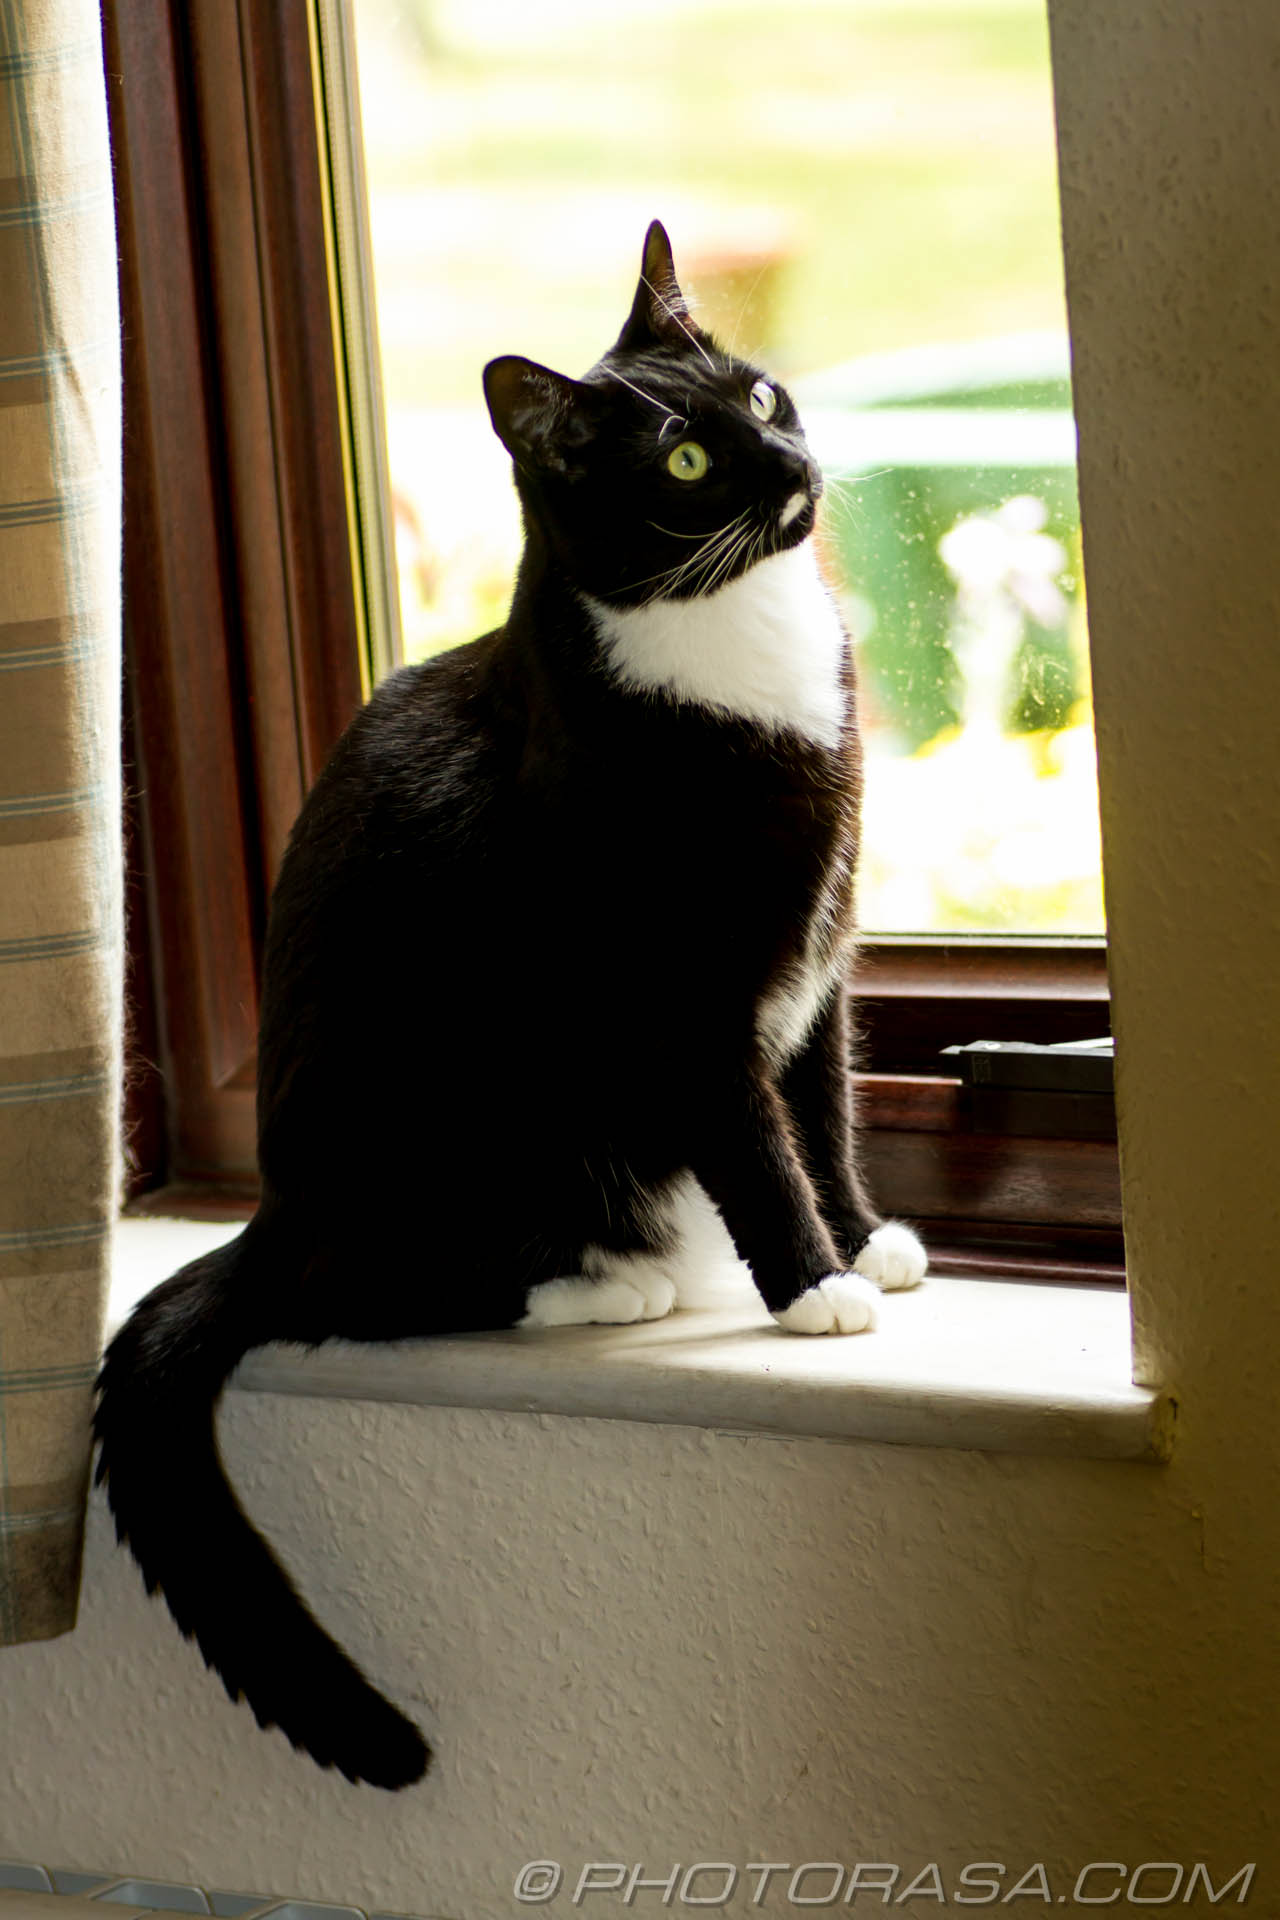 http://photorasa.com/black-white-cats/sitting-at-the-window/